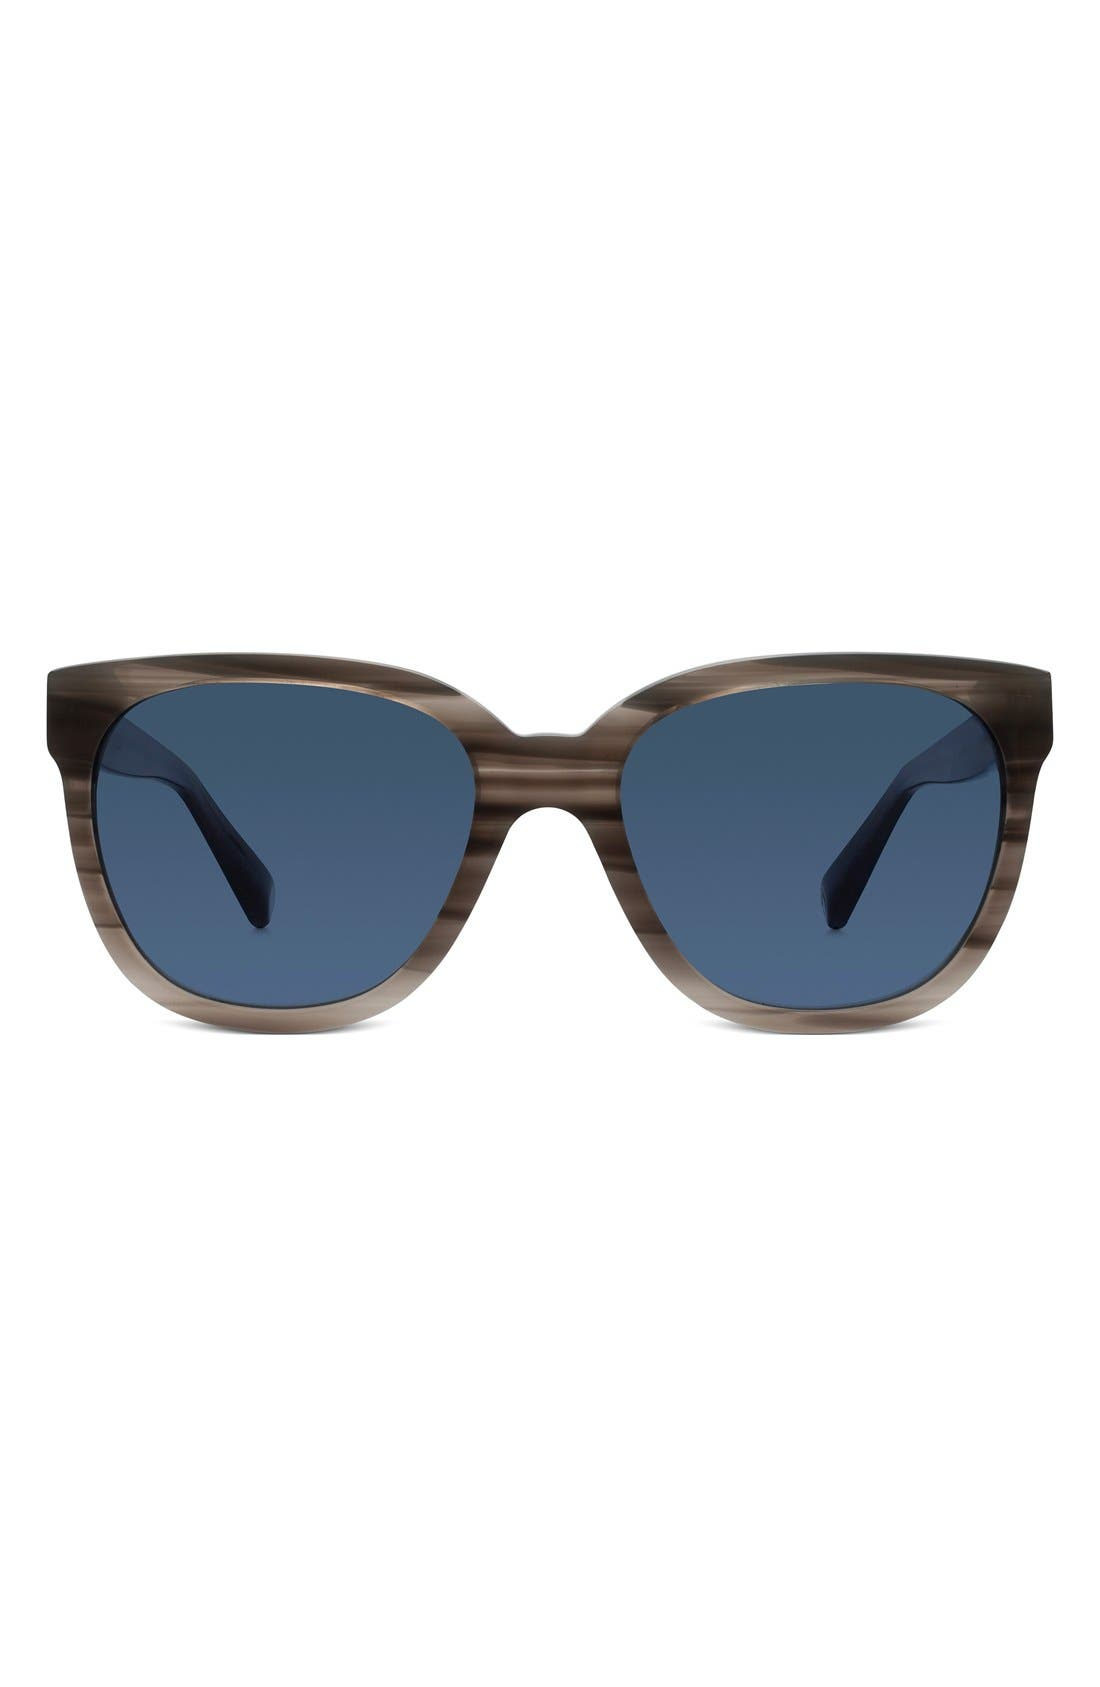 WARBY PARKER 'Reilly' 55mm Polarized Sunglasses, Main, color, 060